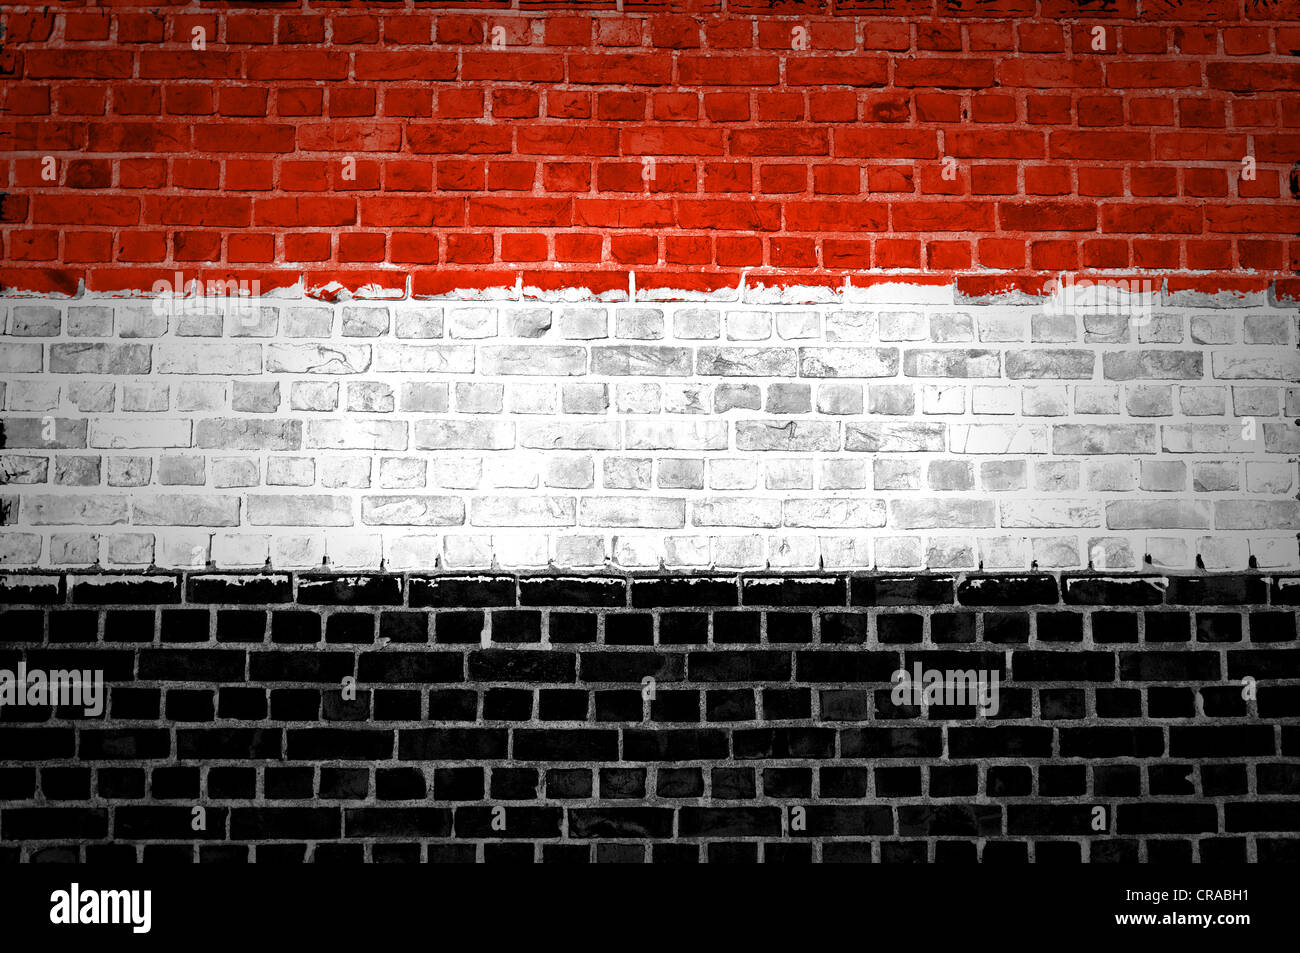 An image of the Yemen flag painted on a brick wall in an urban location Stock Photo